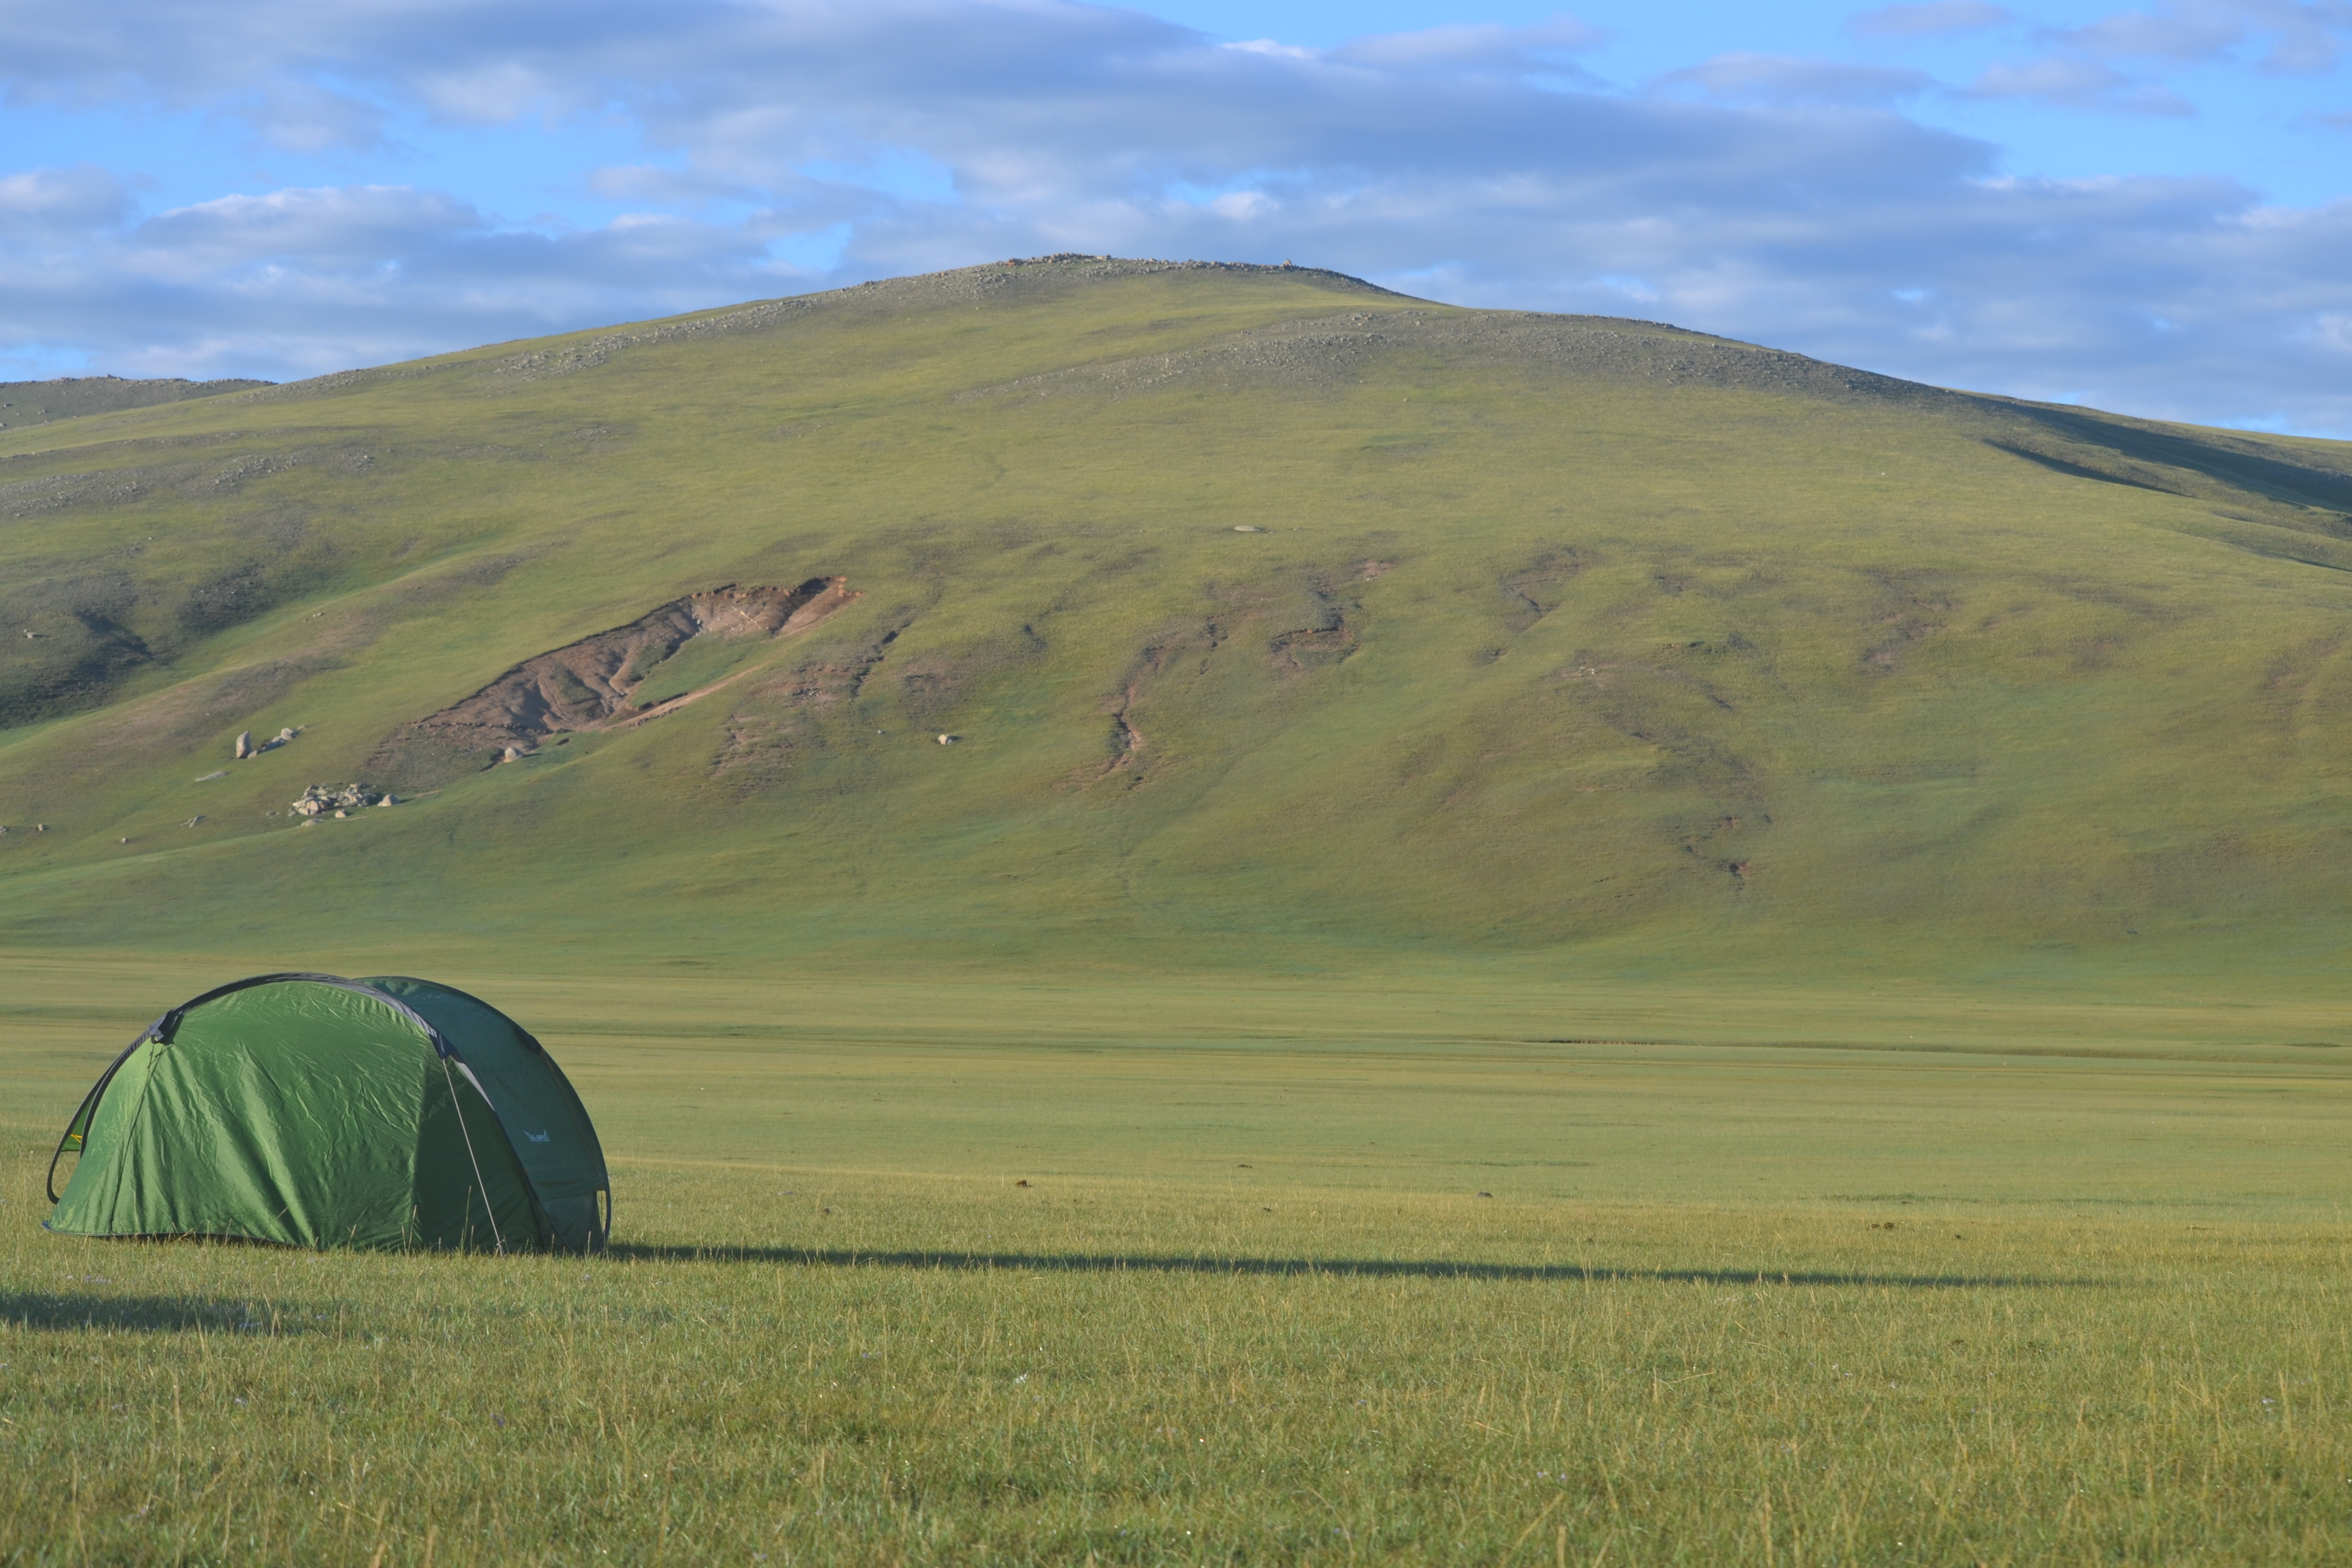 image of tent - accommodation when staying with Mongolian Nomadic family